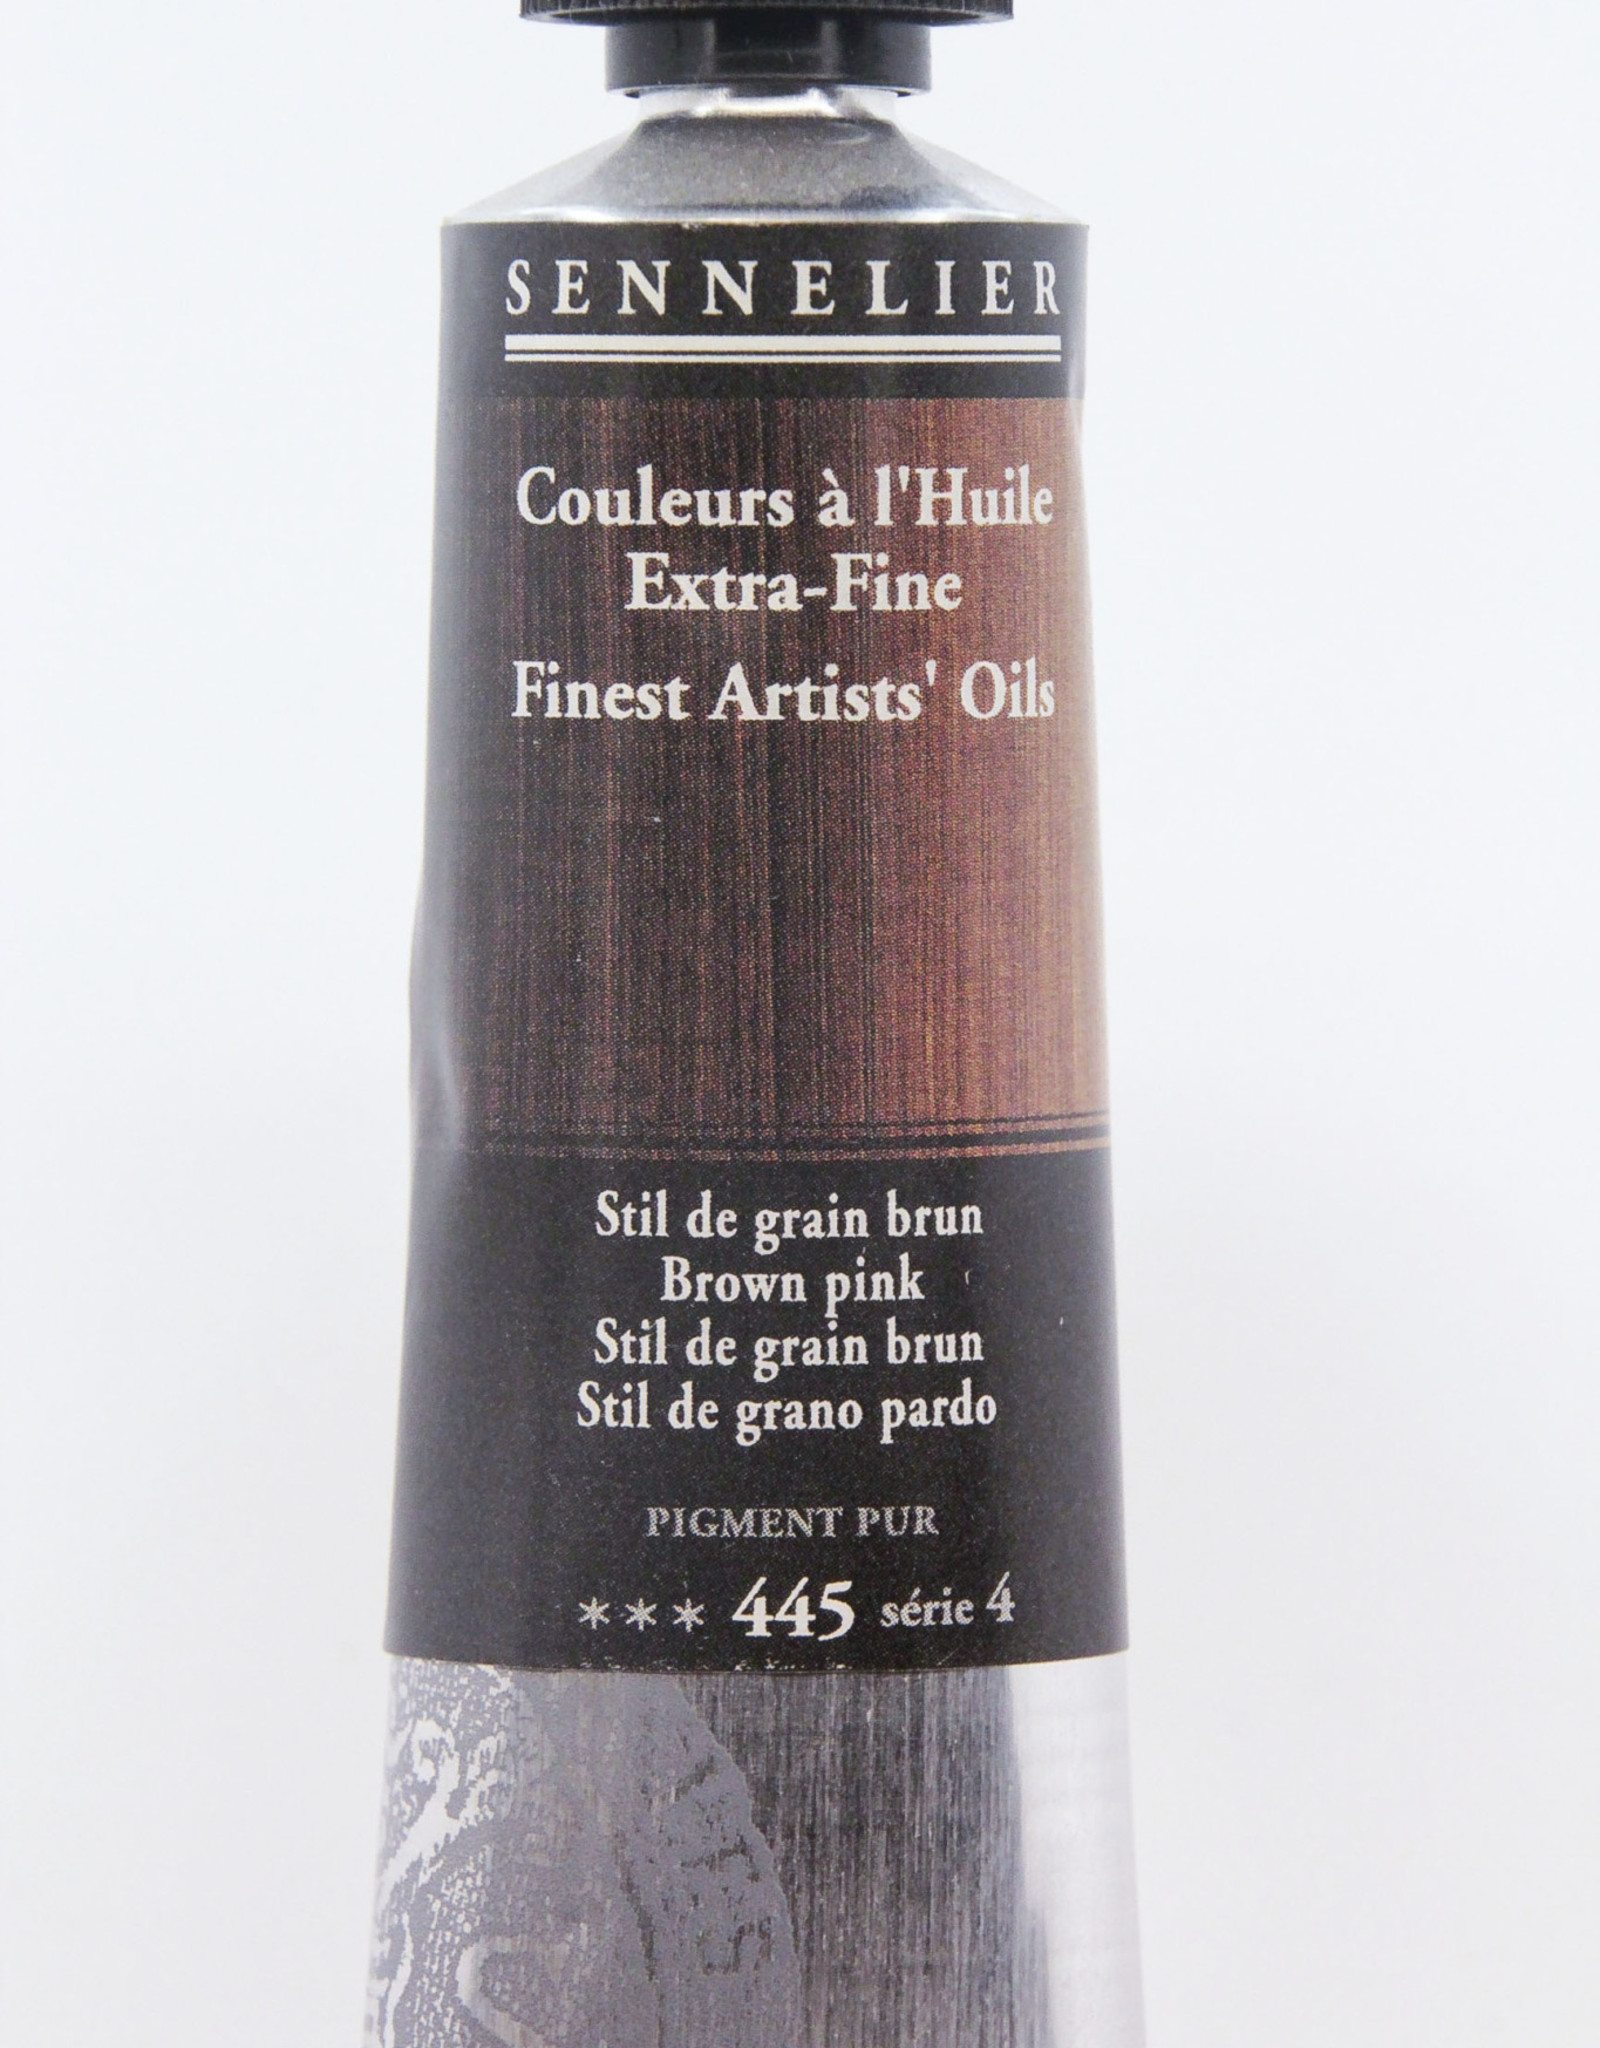 Sennelier, Fine Artists' Oil Paint, Brown Pink, 445, 40ml Tube, Series 4